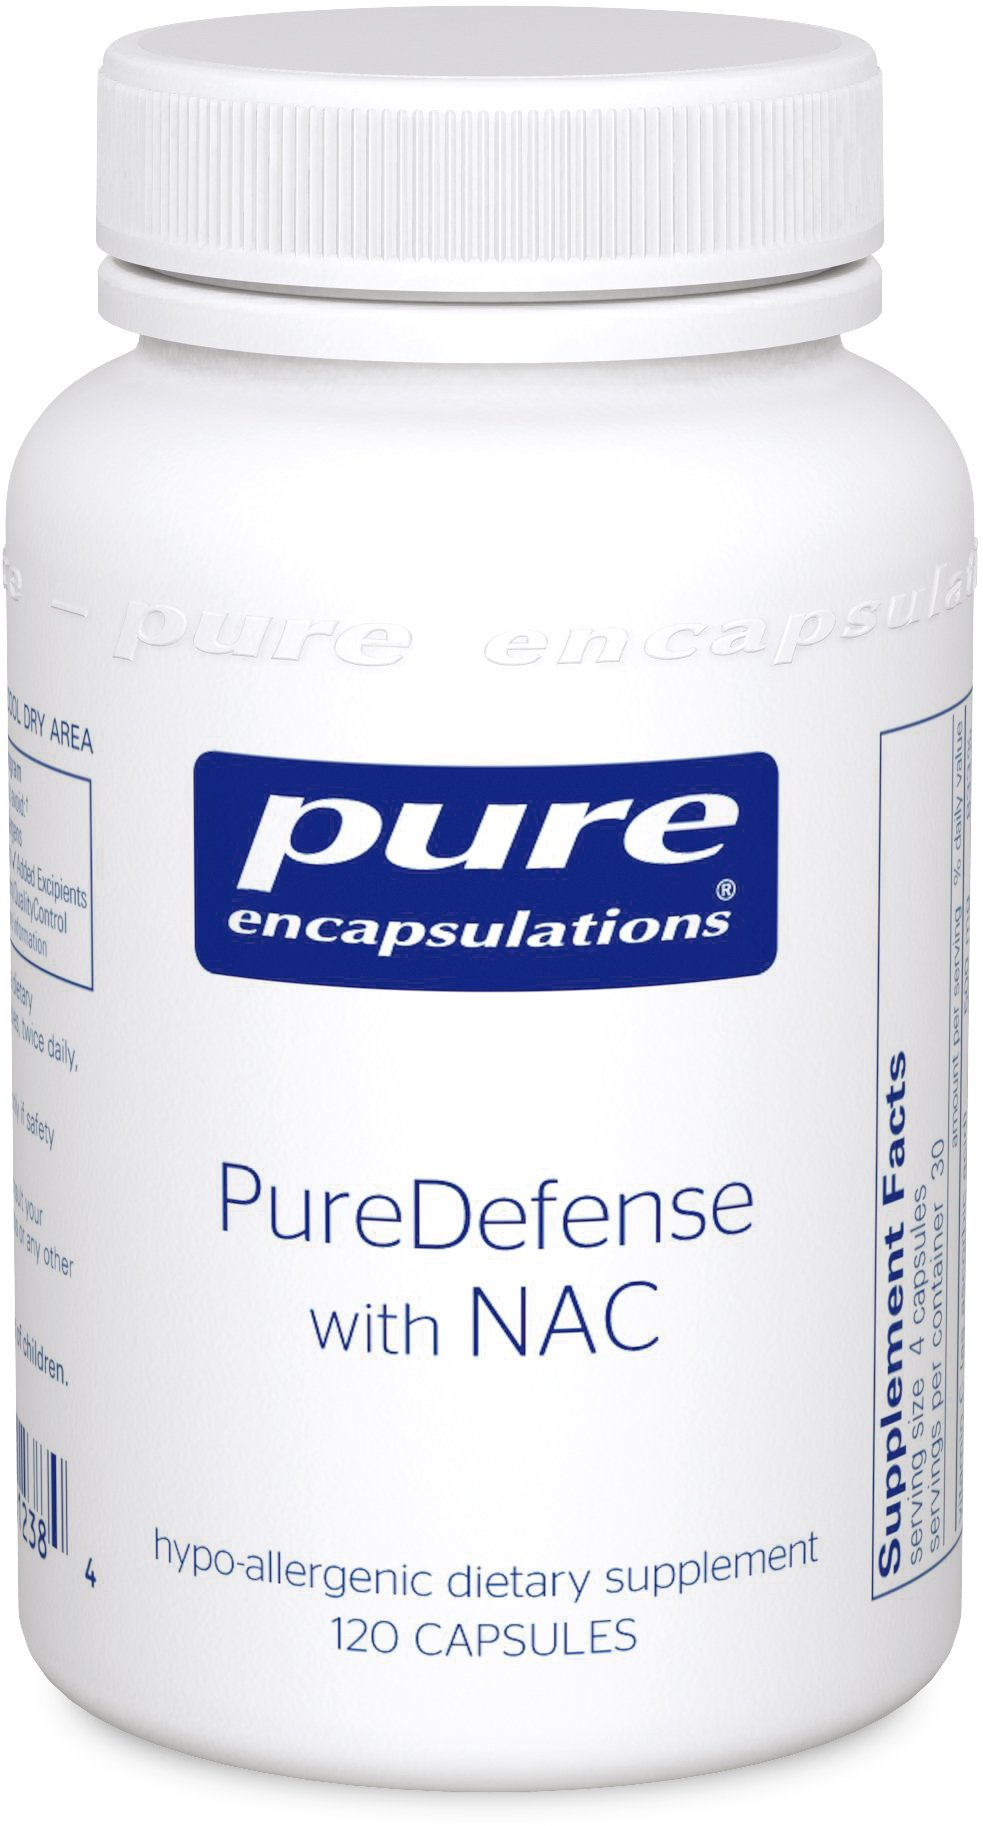 Pure Encapsulations - PureDefense with NAC - Hypoallergenic Supplement for Enhanced Immune Defense and Upper Respiratory Support* - 120 Capsules